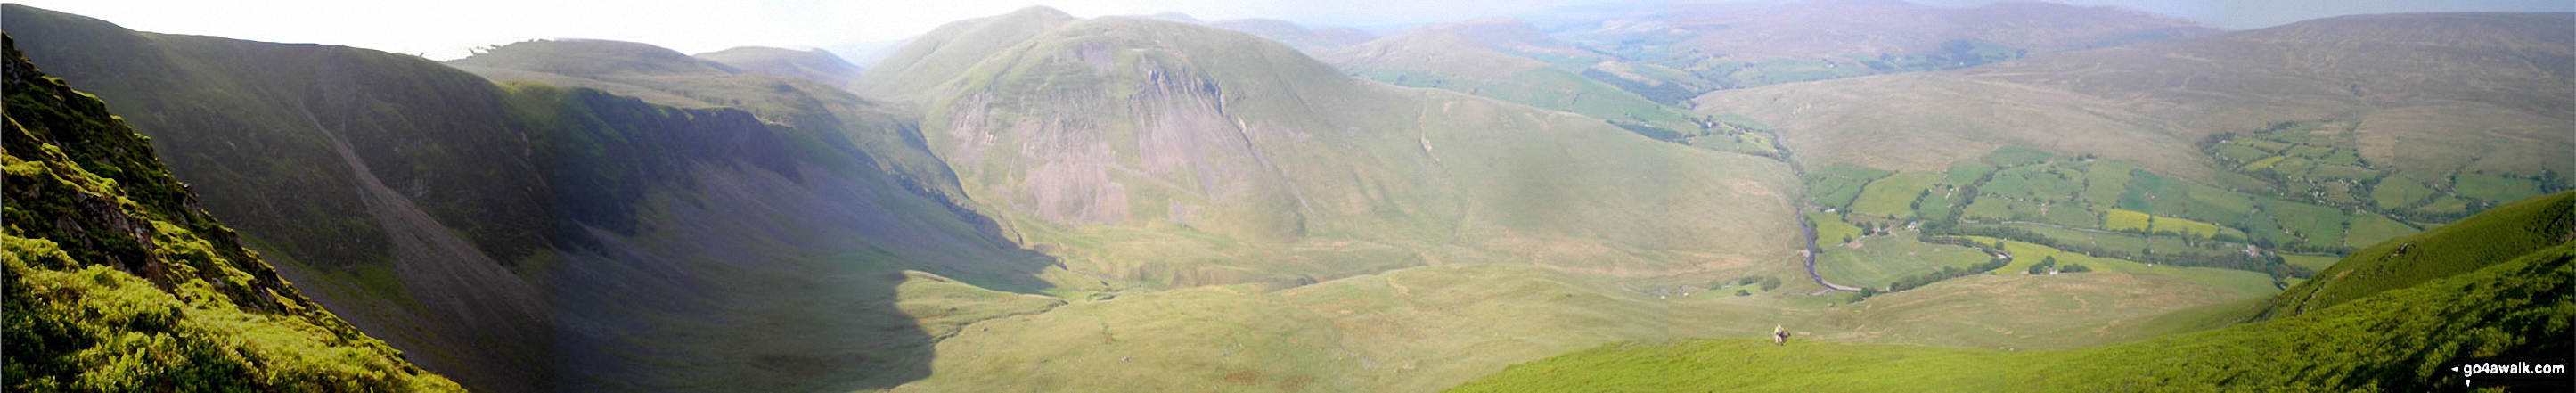 Cautley Crag, Cautley Spout, Yarlside, Cautley Holme Beck, and Cross Keys from Great Dummacks